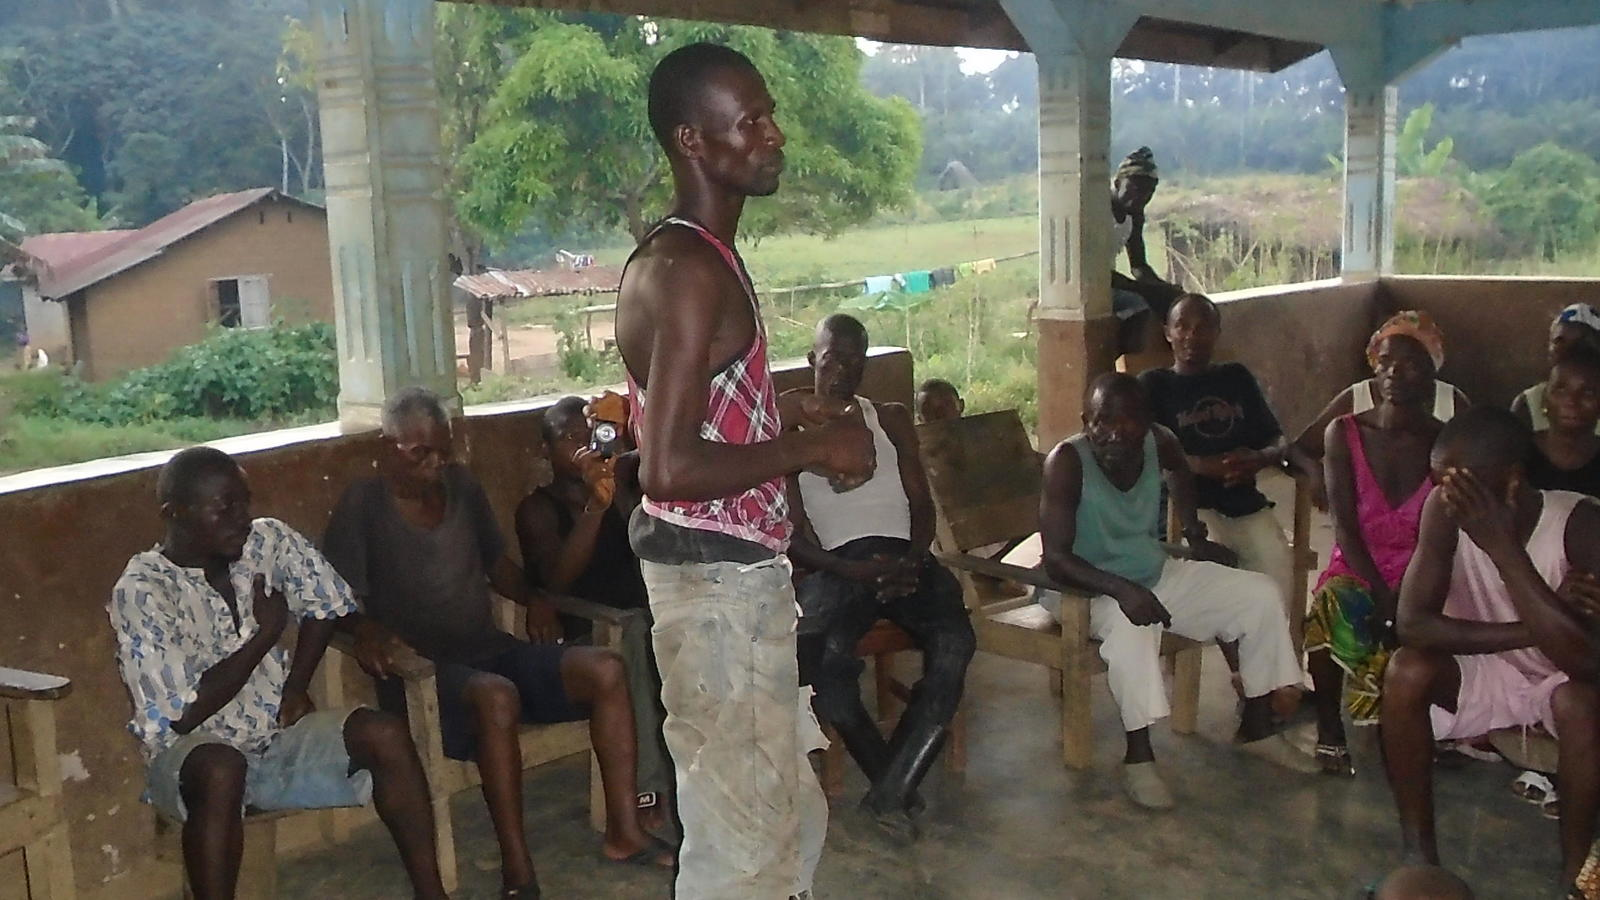 A meeting of the villagers discussing cleaning in Tombohuaun.